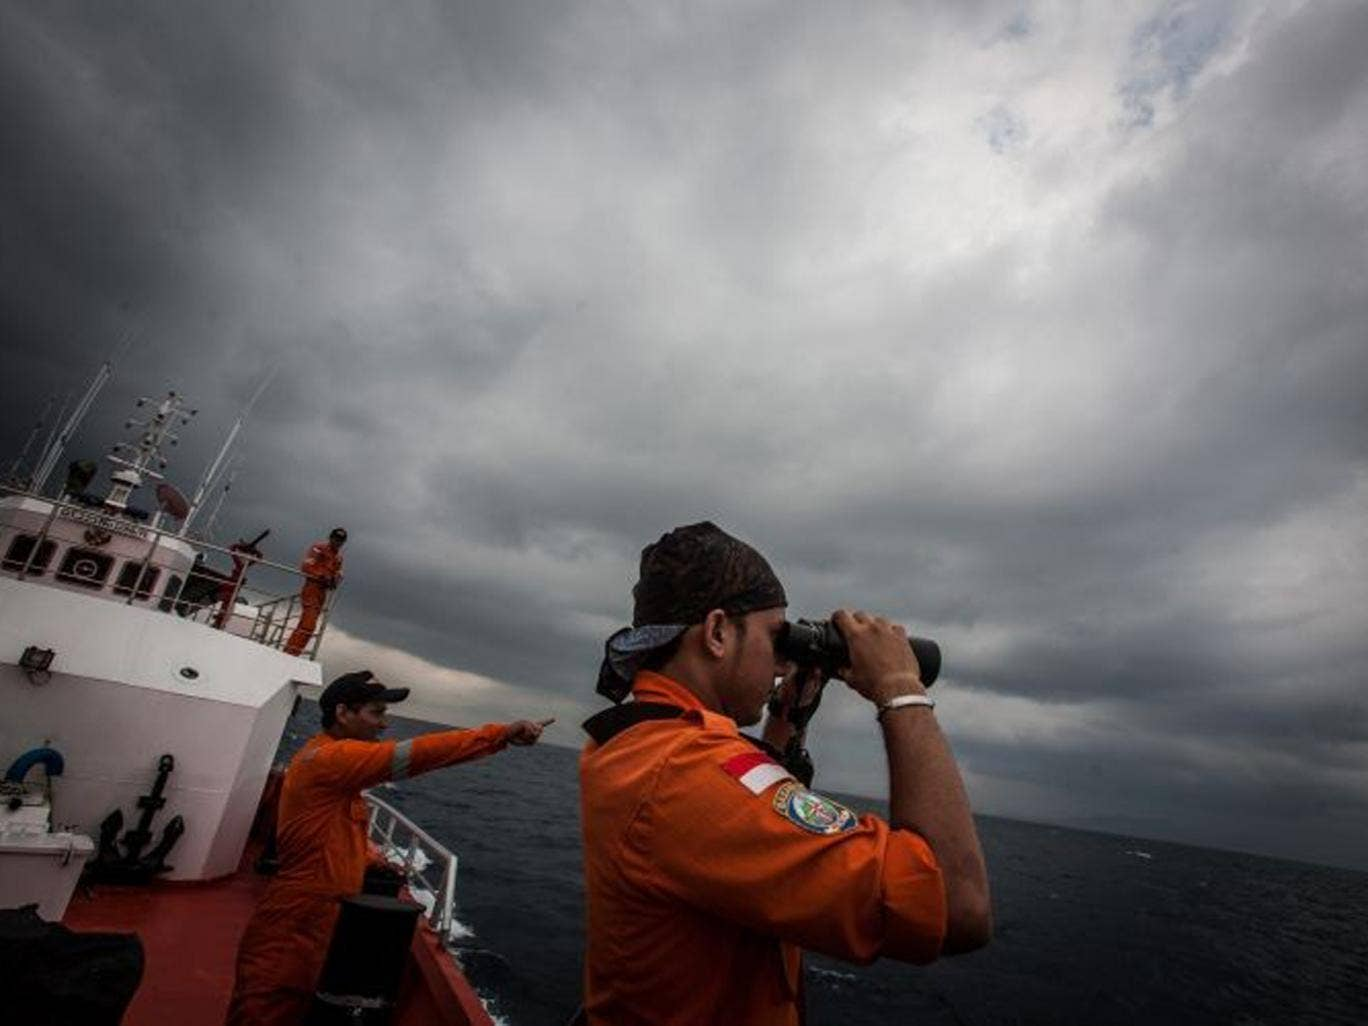 Indonesian search and rescue workers survey high seas as part of the search mission